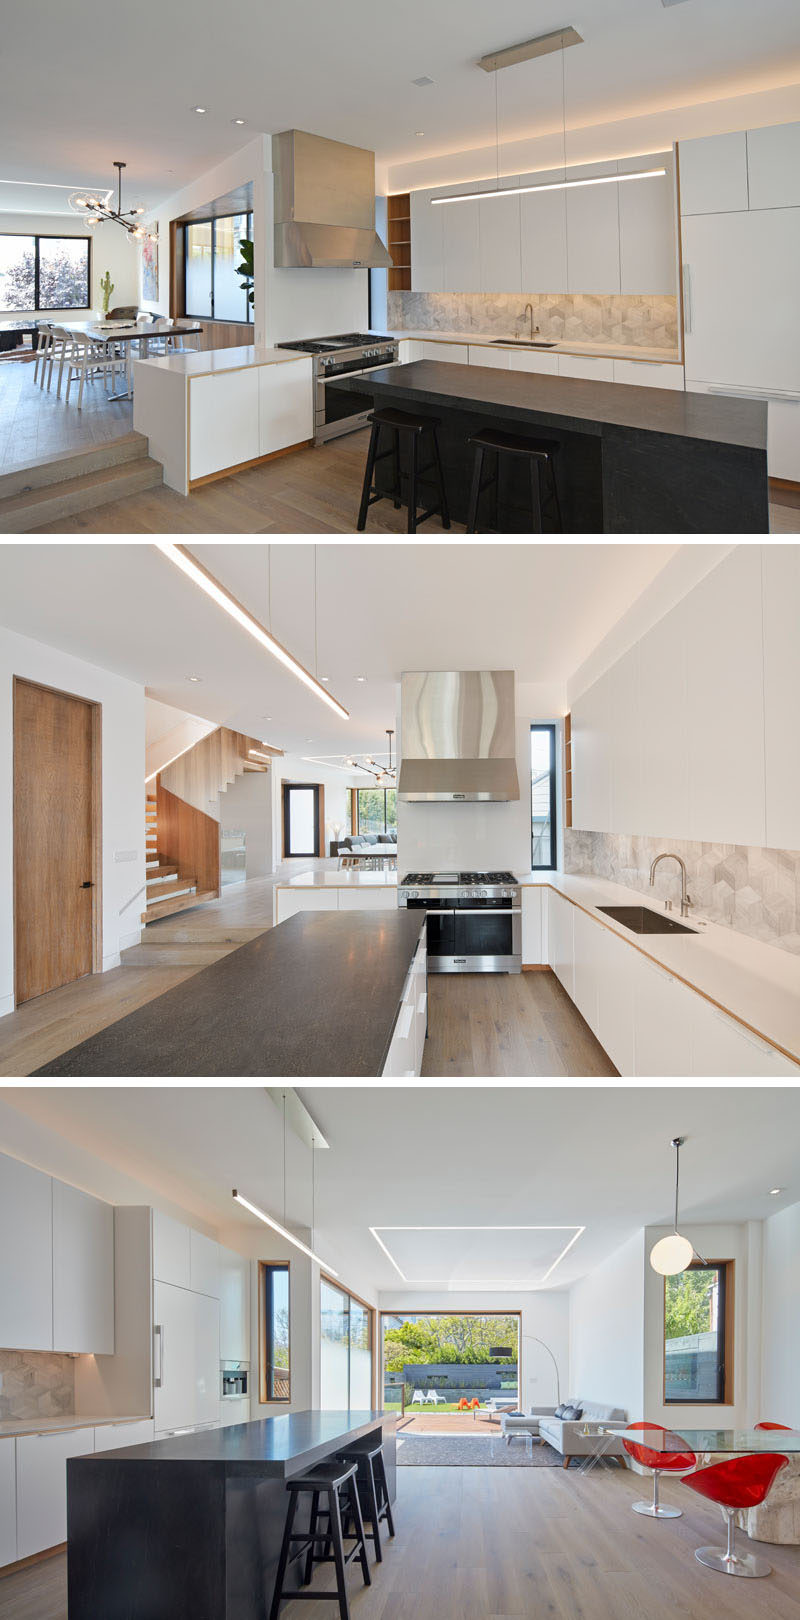 Stepping down from the dining room in this modern house is the kitchen. A large black central island with seating contrasts the white cabinets and countertops, and stainless steel appliances. Off to the side of the kitchen is a small dining nook with red chairs and a glass table.